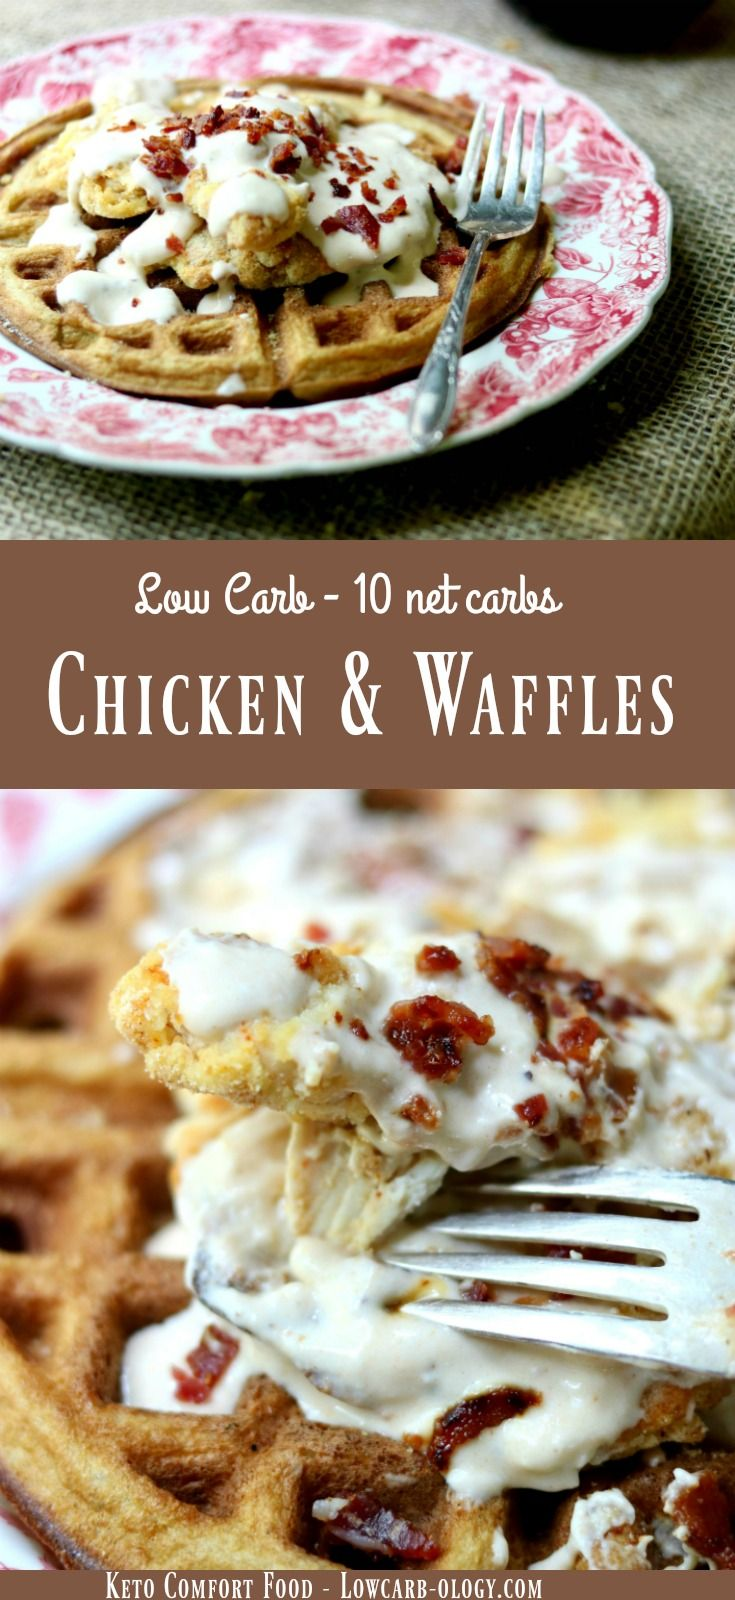 Low carb chicken and waffles recipe is a can't-stop-eating-it dance of spicy, creamy, sweet, salty, crispy, tender goodness. Just 10 net carbs per serving. From Lowcarb-ology.com